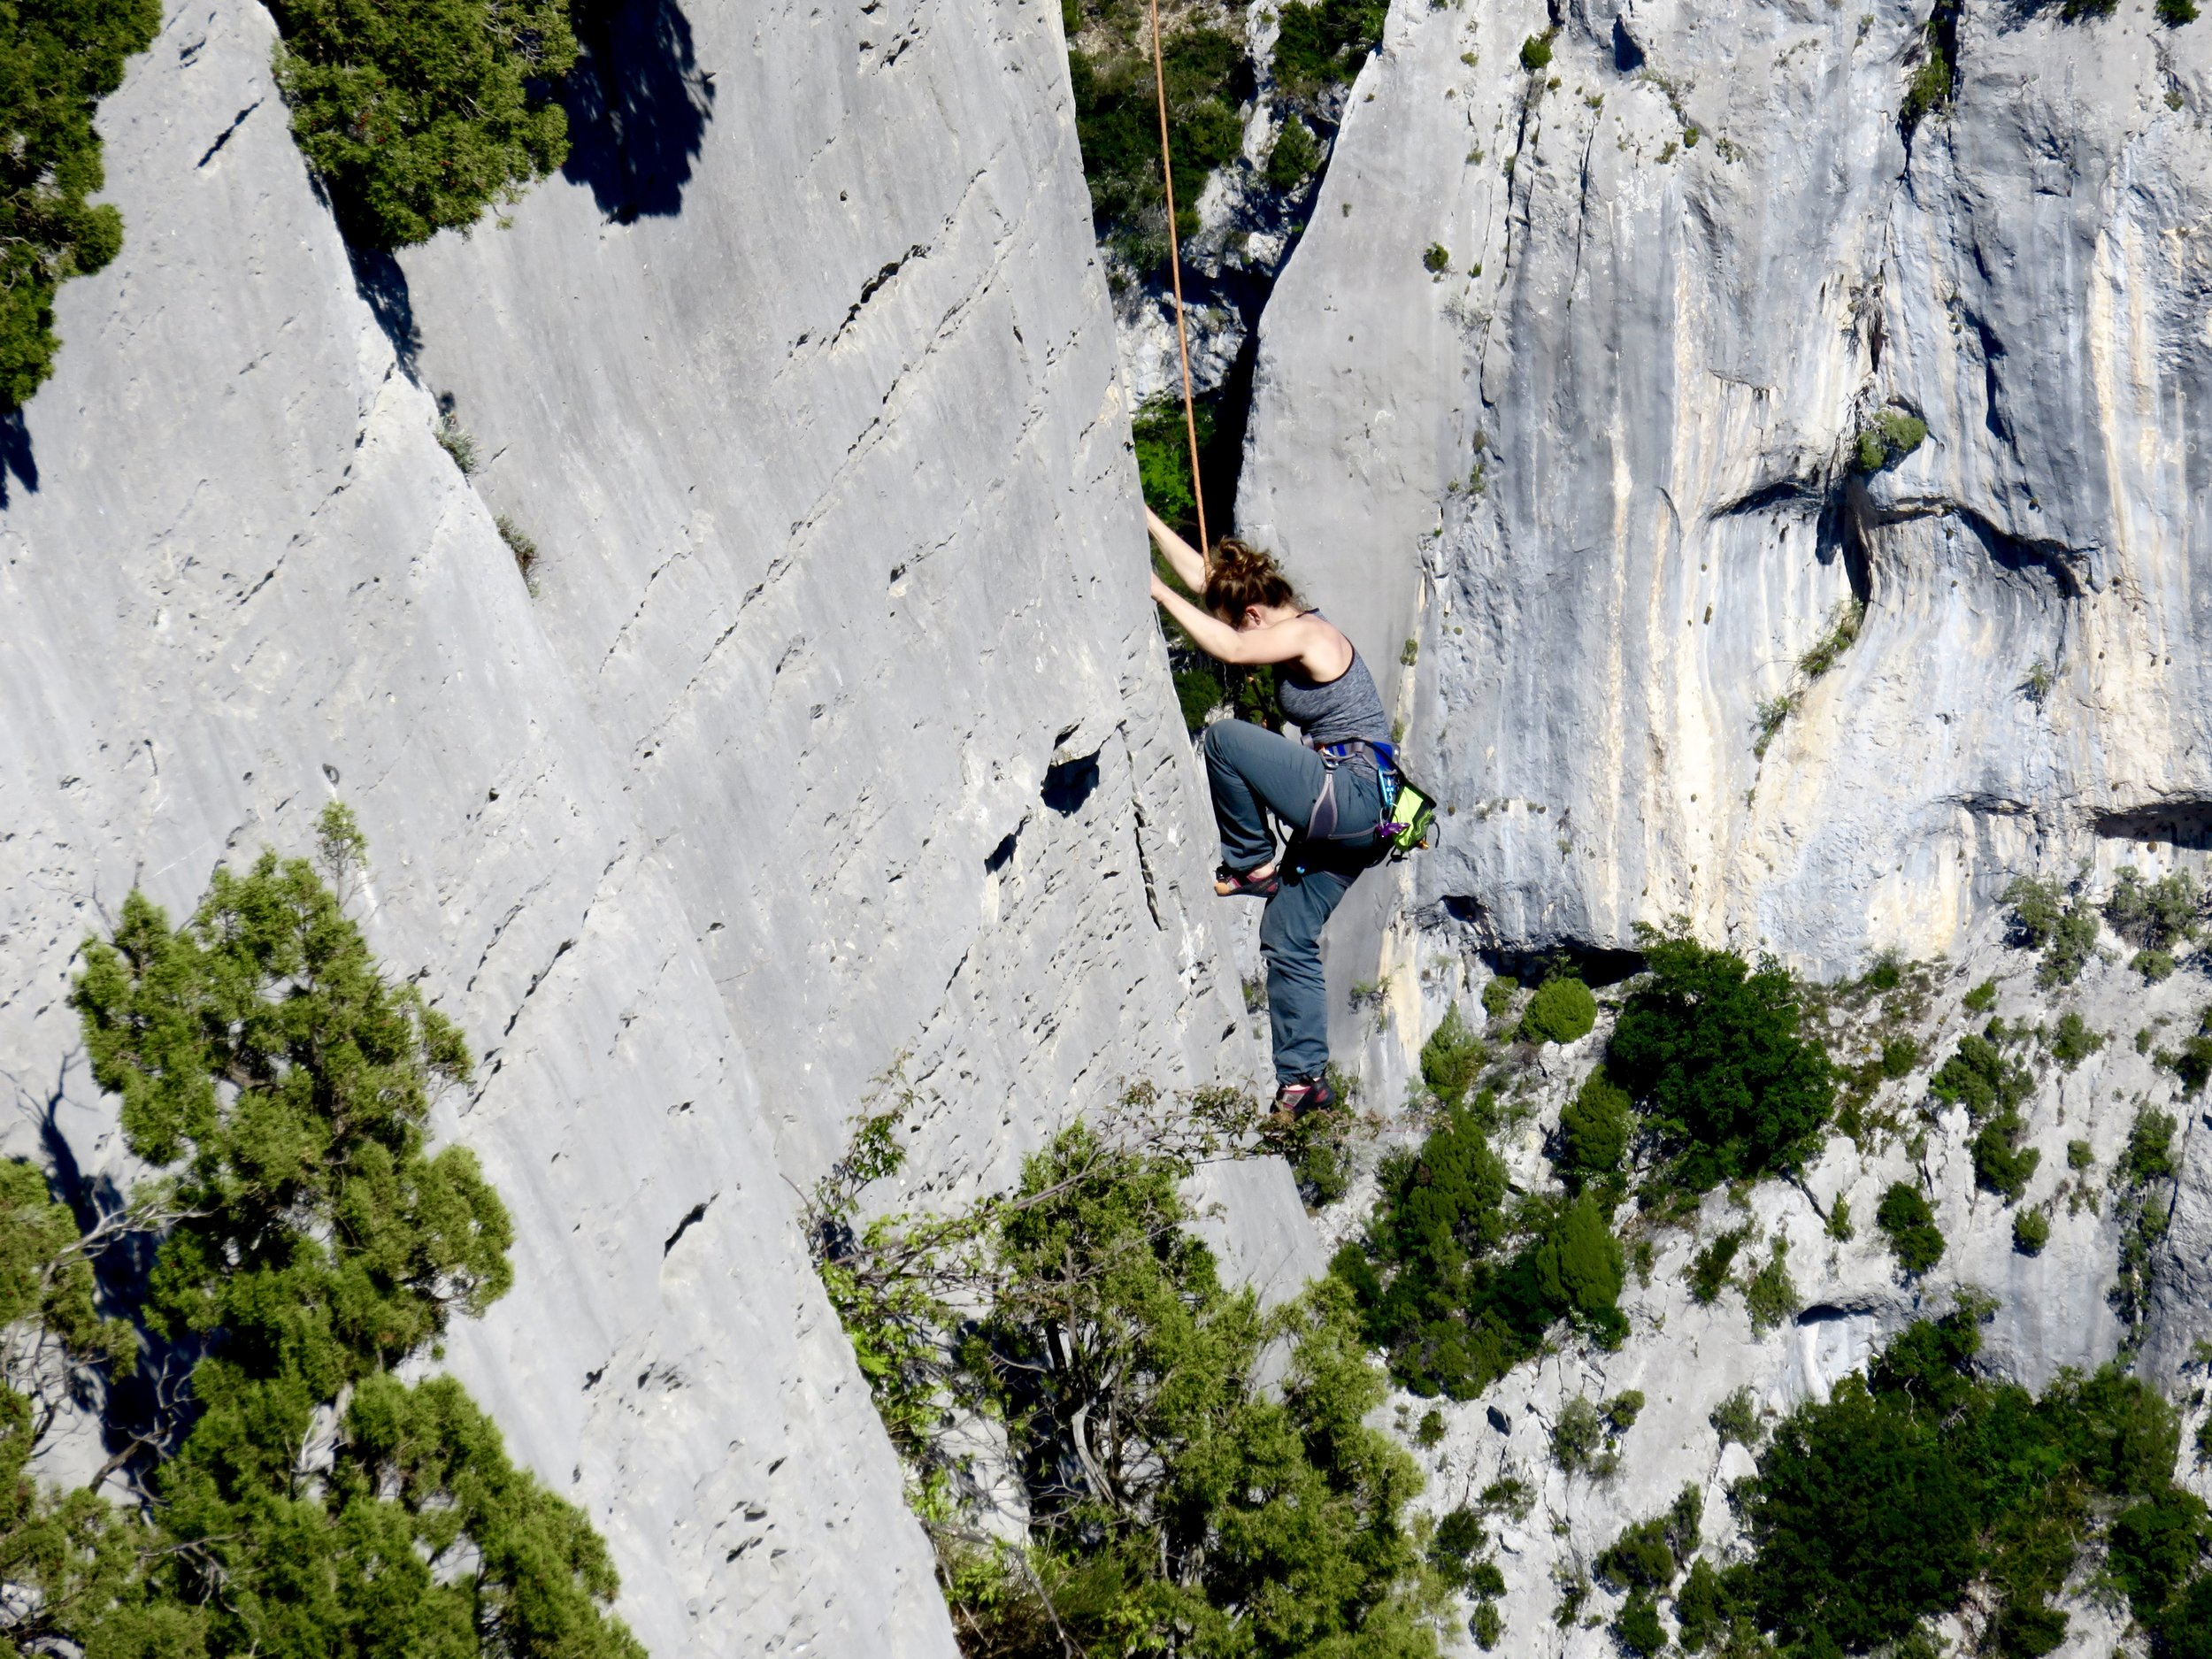 Mecca for climbers. . .